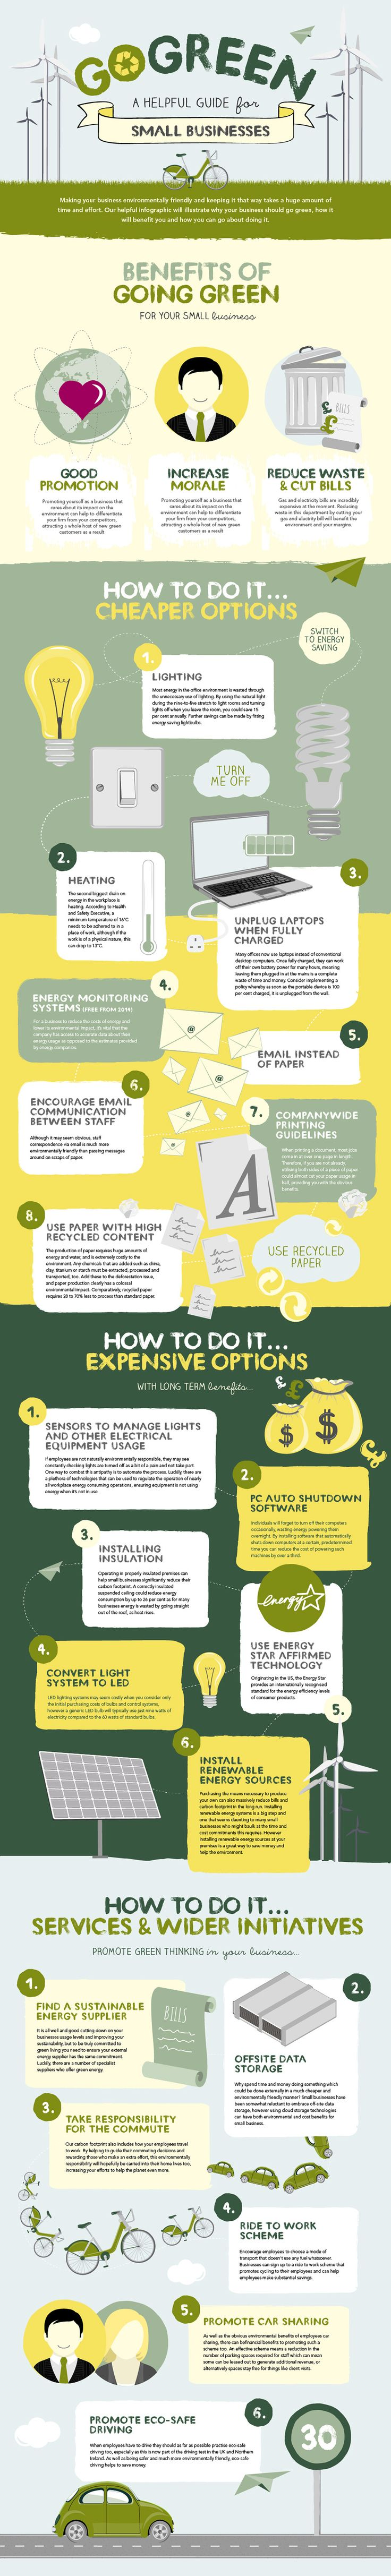 Green Guide For Small Businesses - infographic